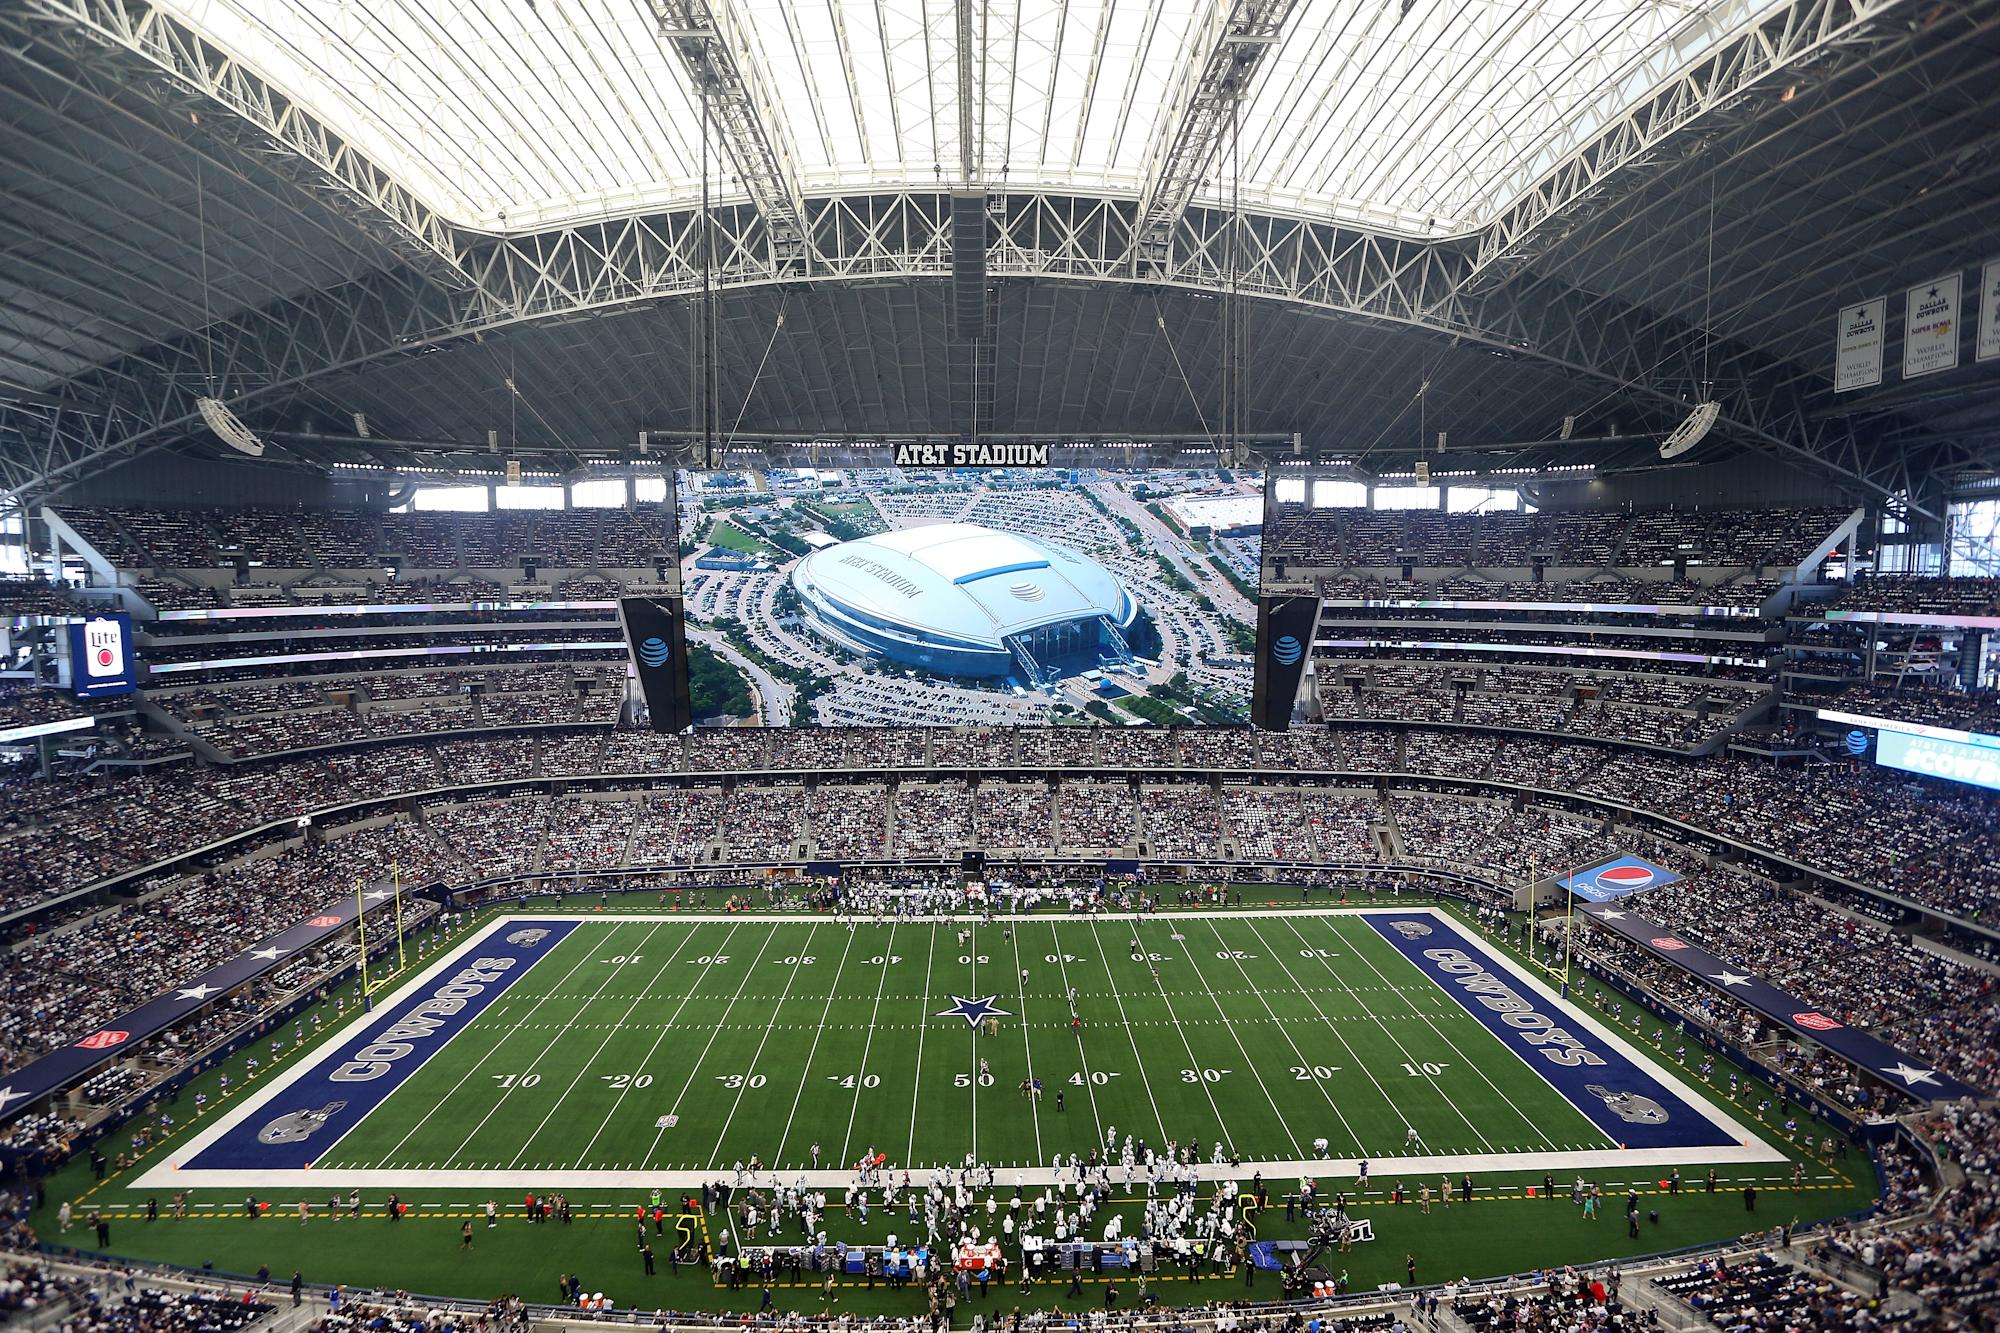 Ncaa Texas High School Title Game Draws Larger Crowd Than Bowl Games